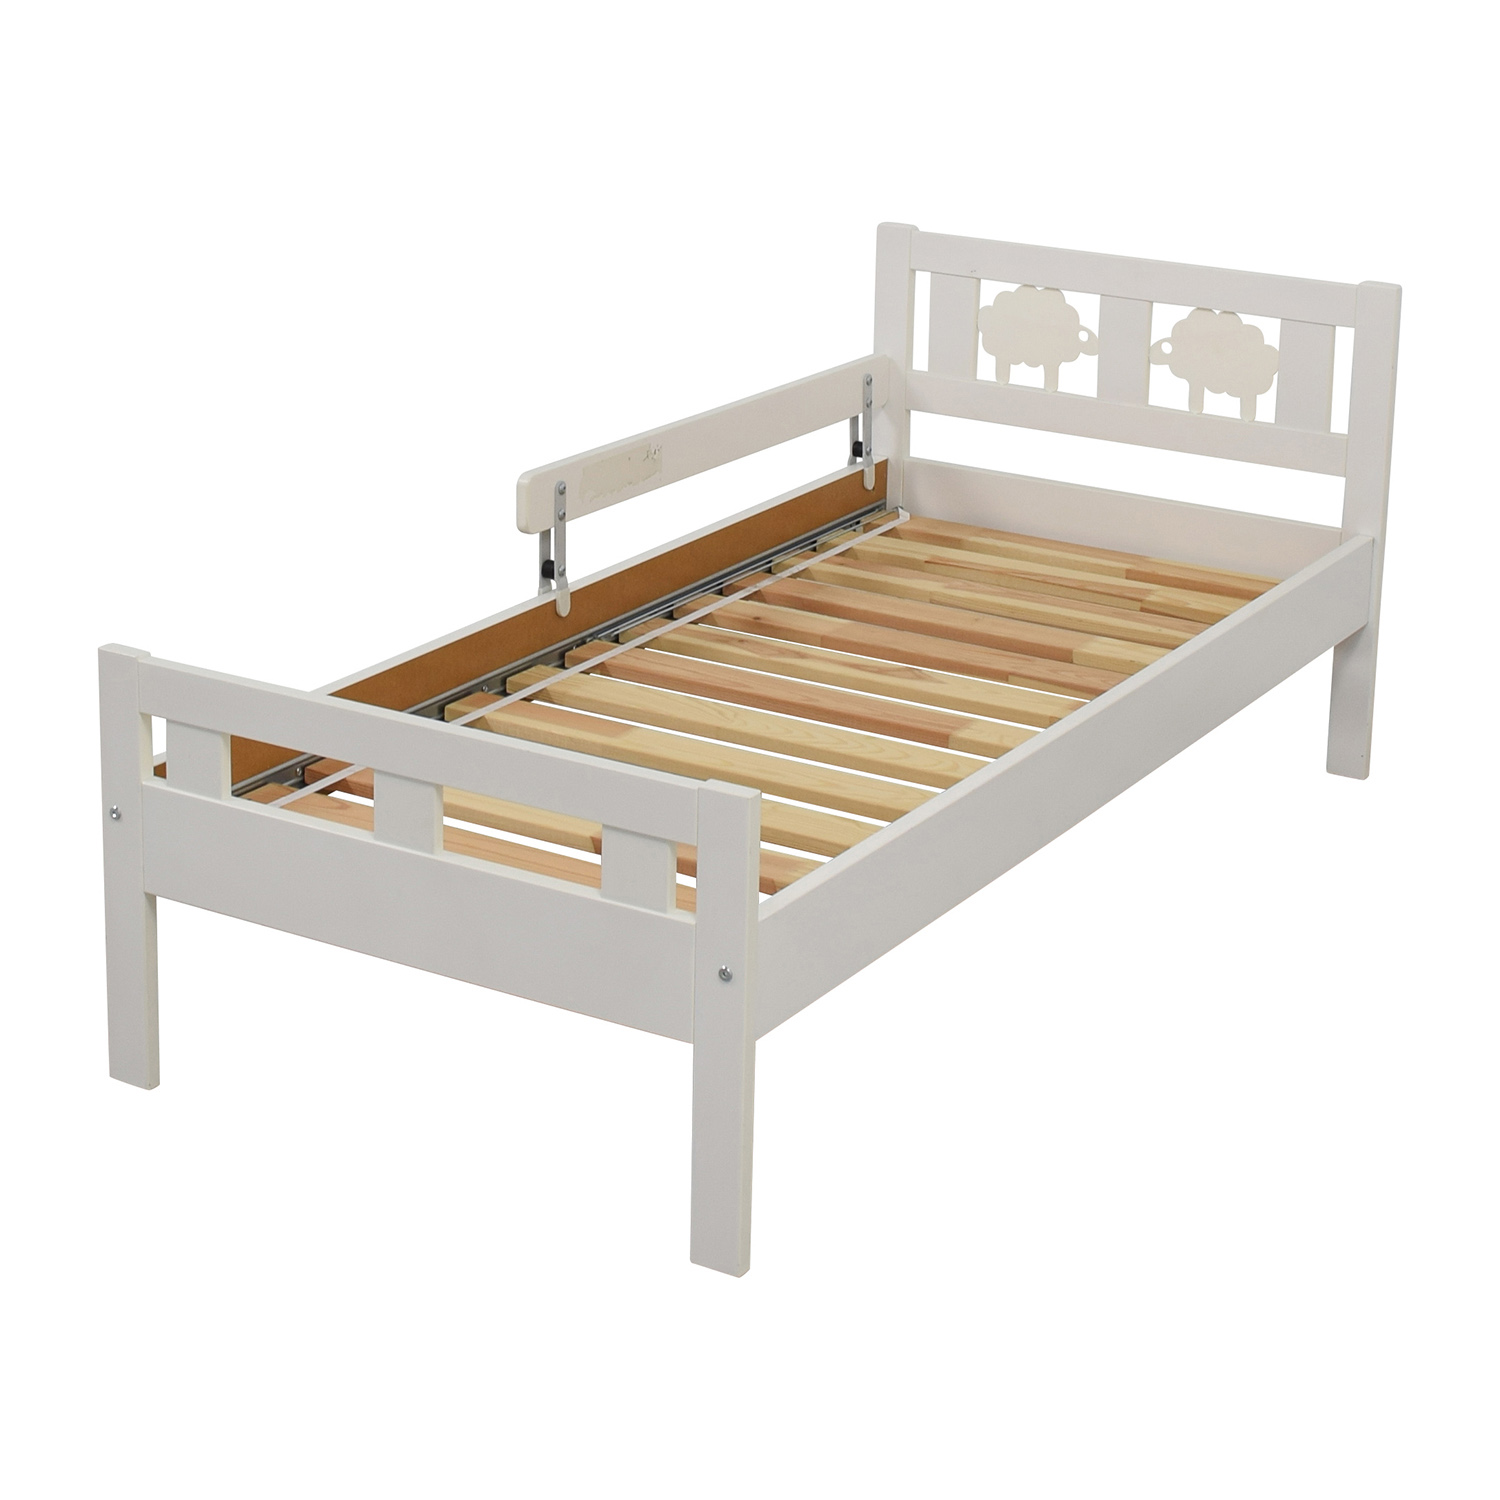 77 Off Ikea Ikea Critter Toddler Bed Beds